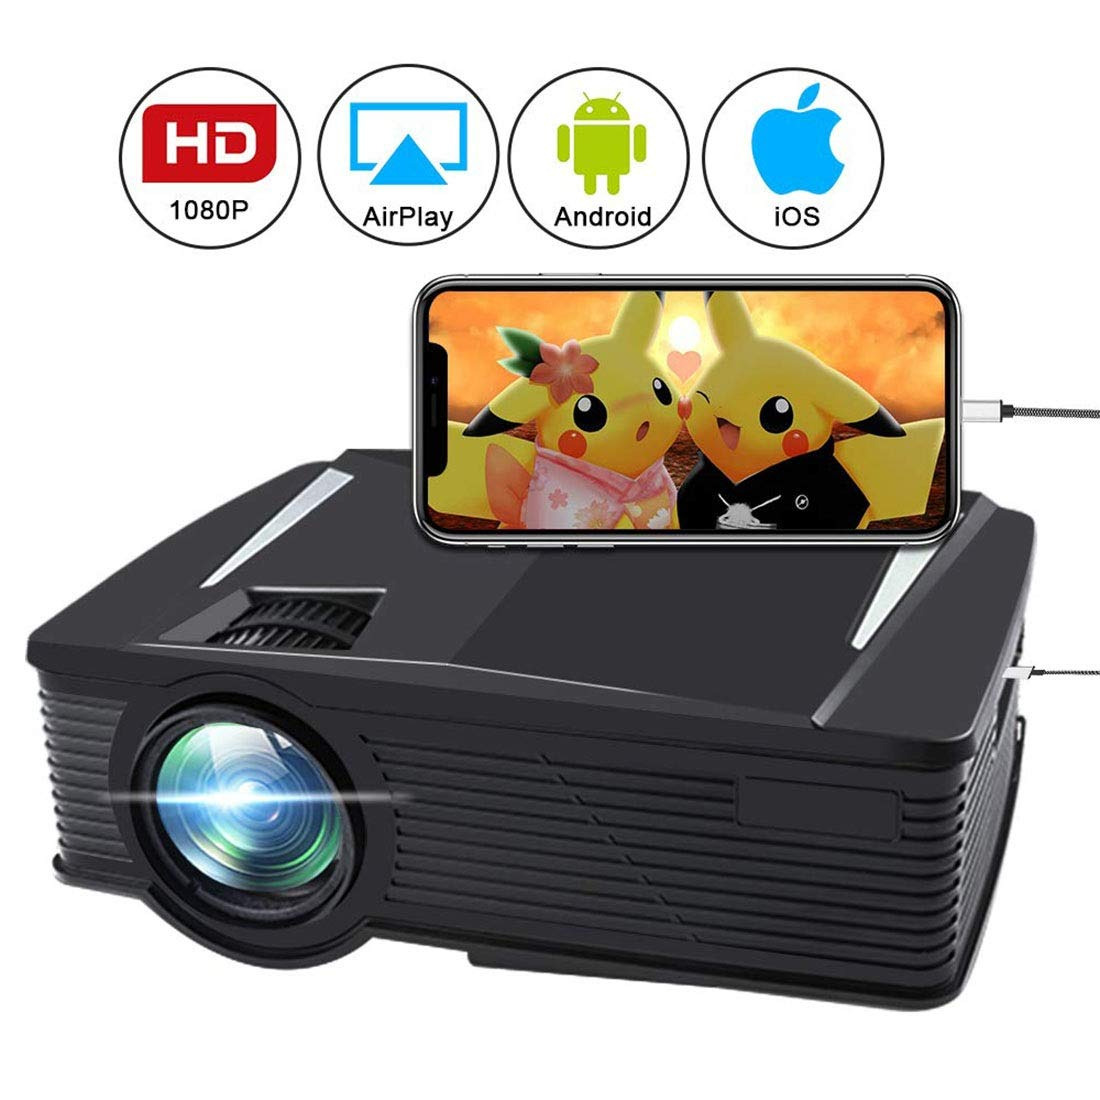 Amazon.com : Wireless Video Projector 2500 Lumen, WiFi LED ...